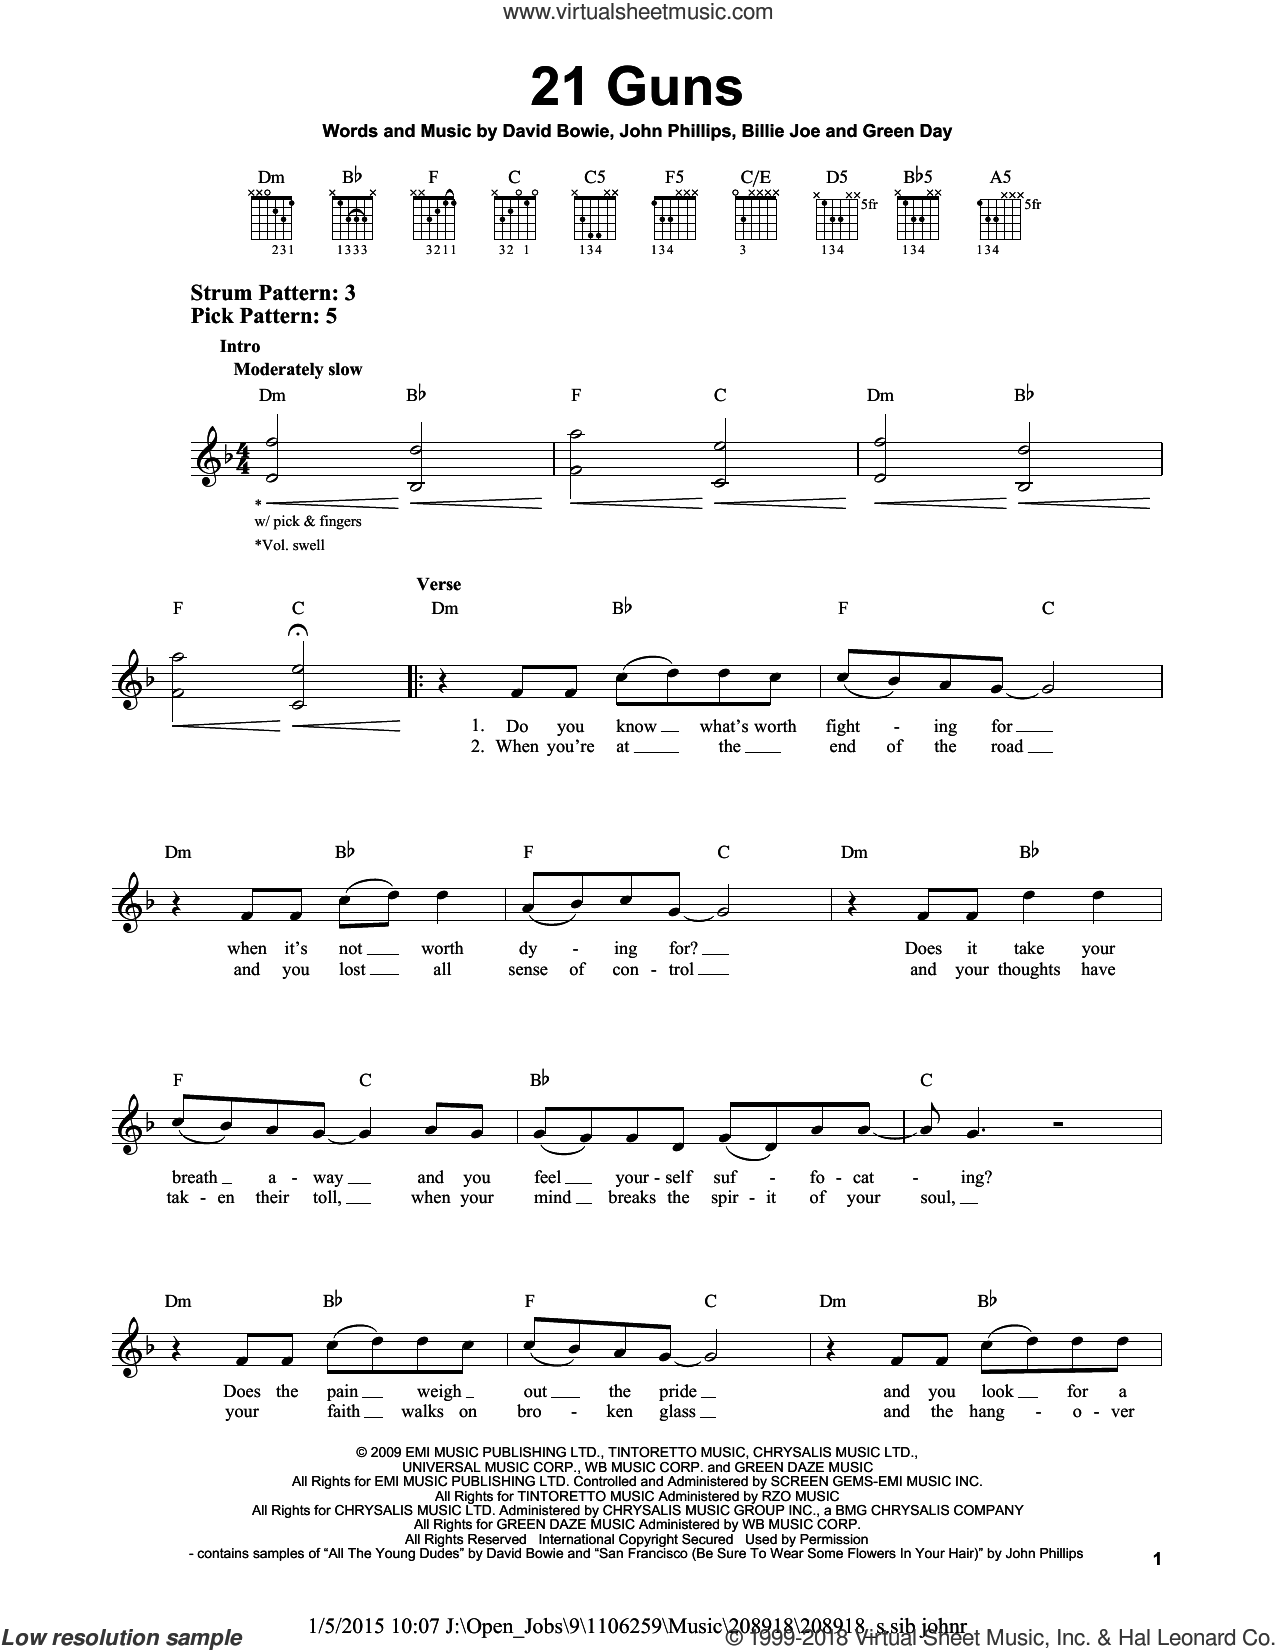 21 Guns sheet music for guitar solo (chords) by Green Day, Billie Joe, David Bowie and John Phillips, easy guitar (chords)